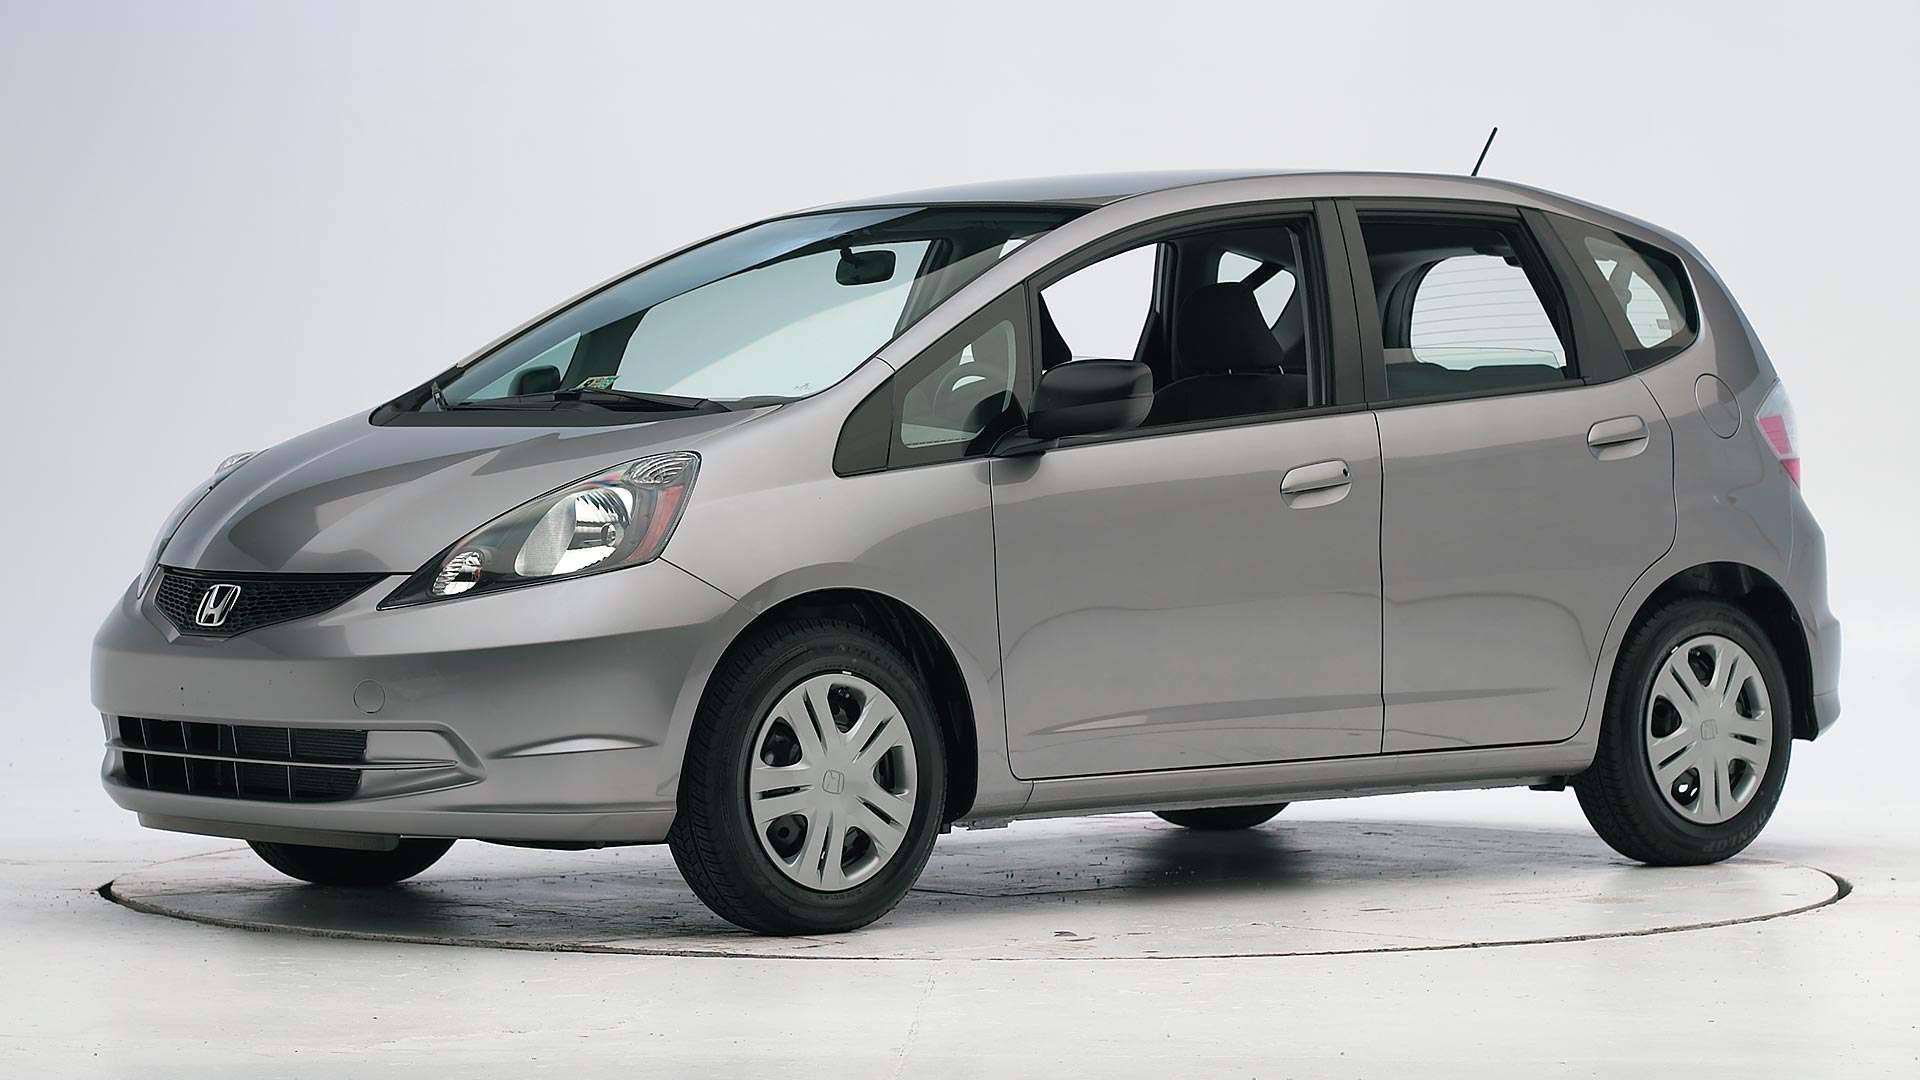 2010 Honda Fit 4-door wagon